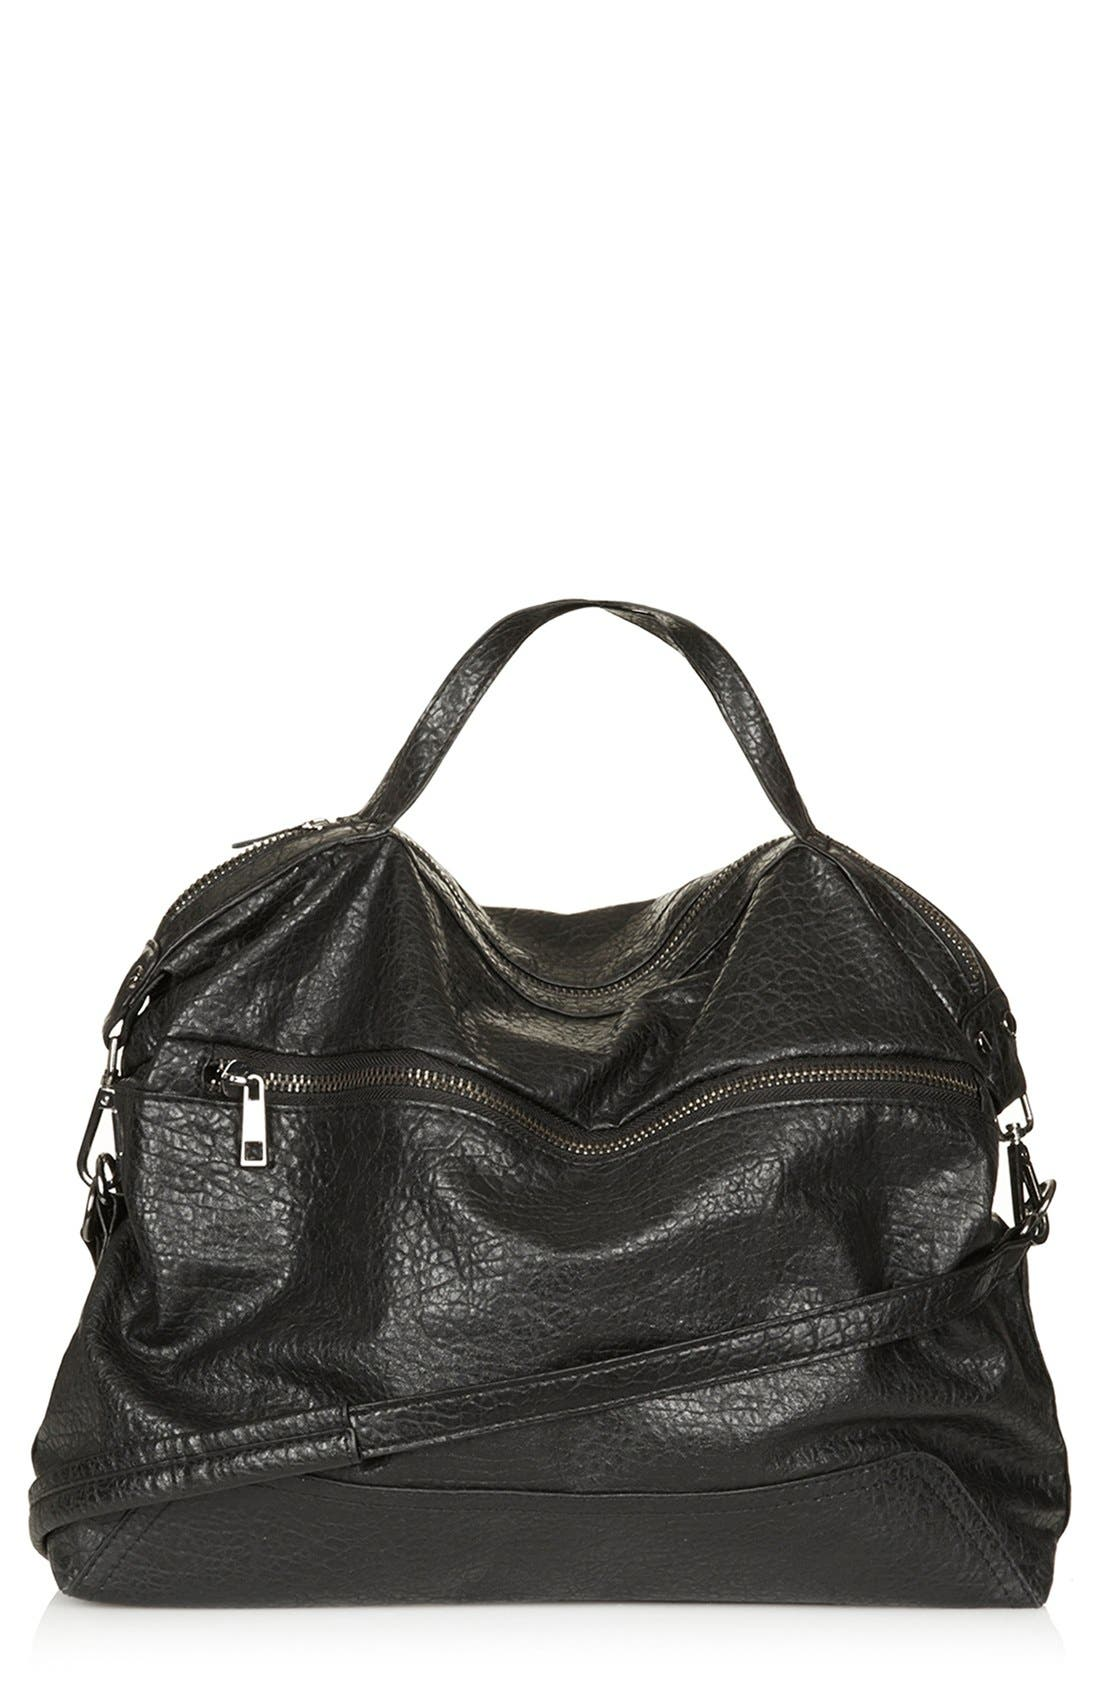 Alternate Image 1 Selected - Topshop Faux Leather Satchel